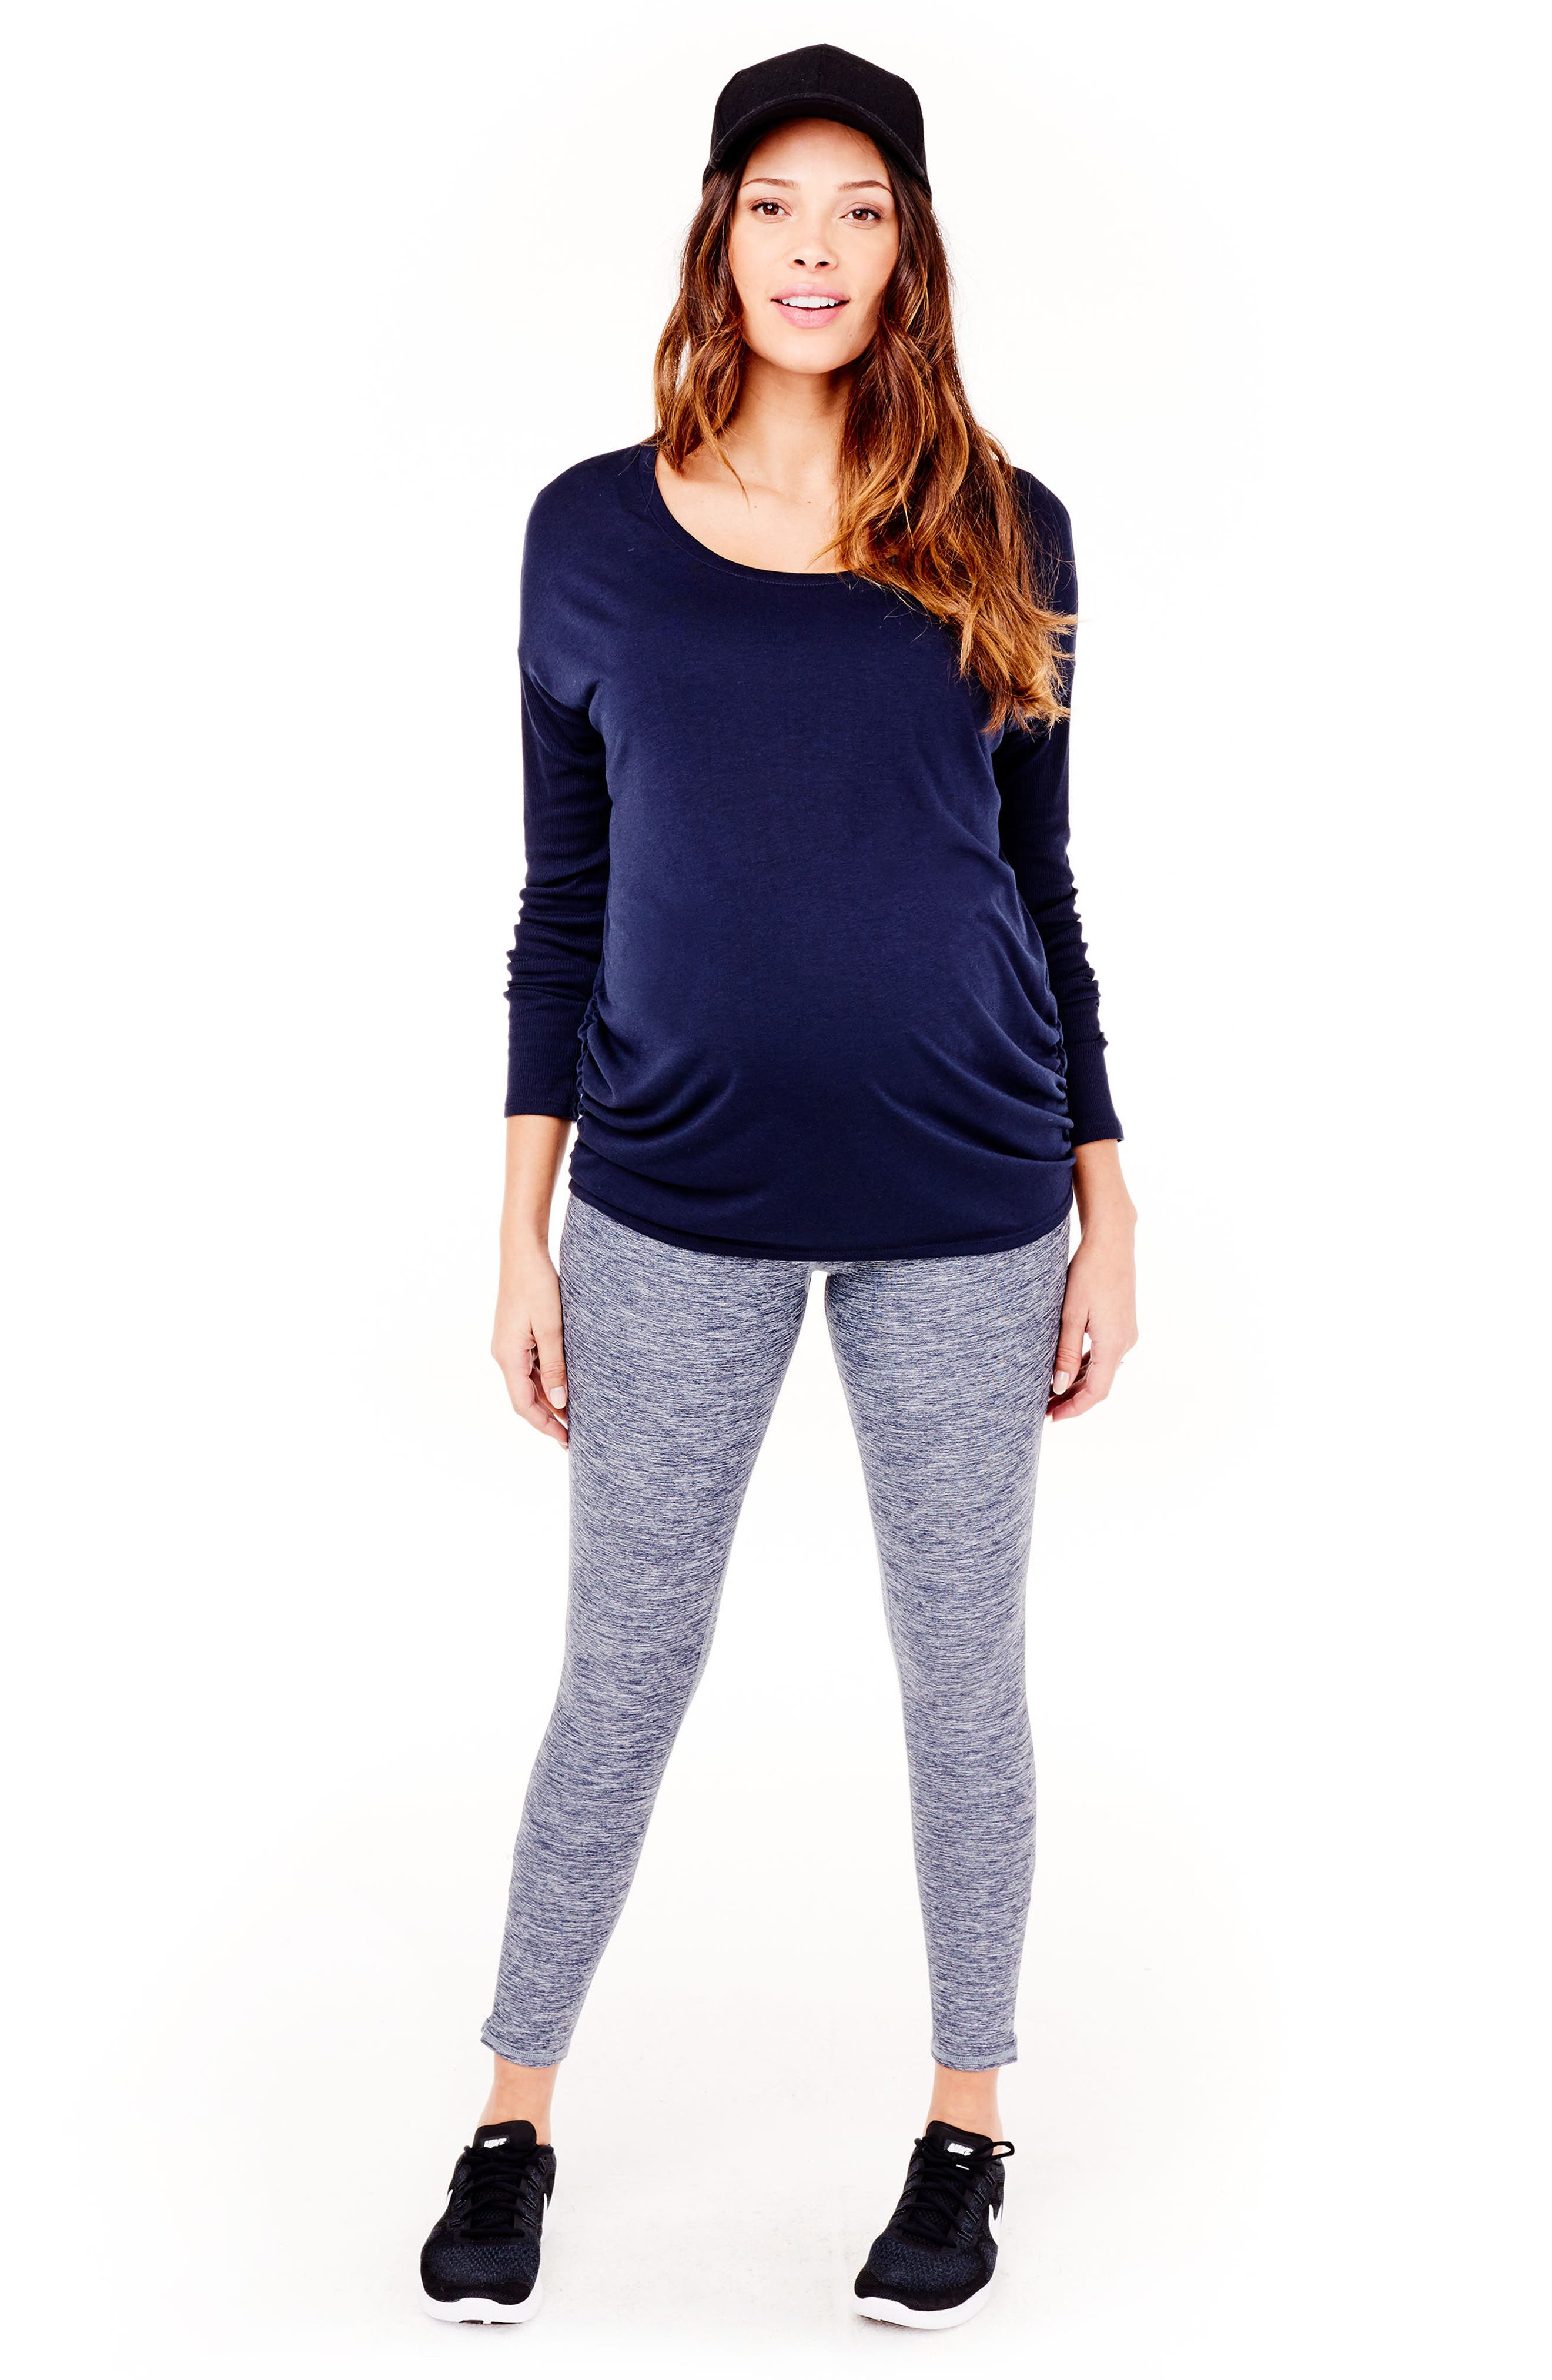 'Active' Maternity Leggings with Crossover Panel,                             Alternate thumbnail 4, color,                             417